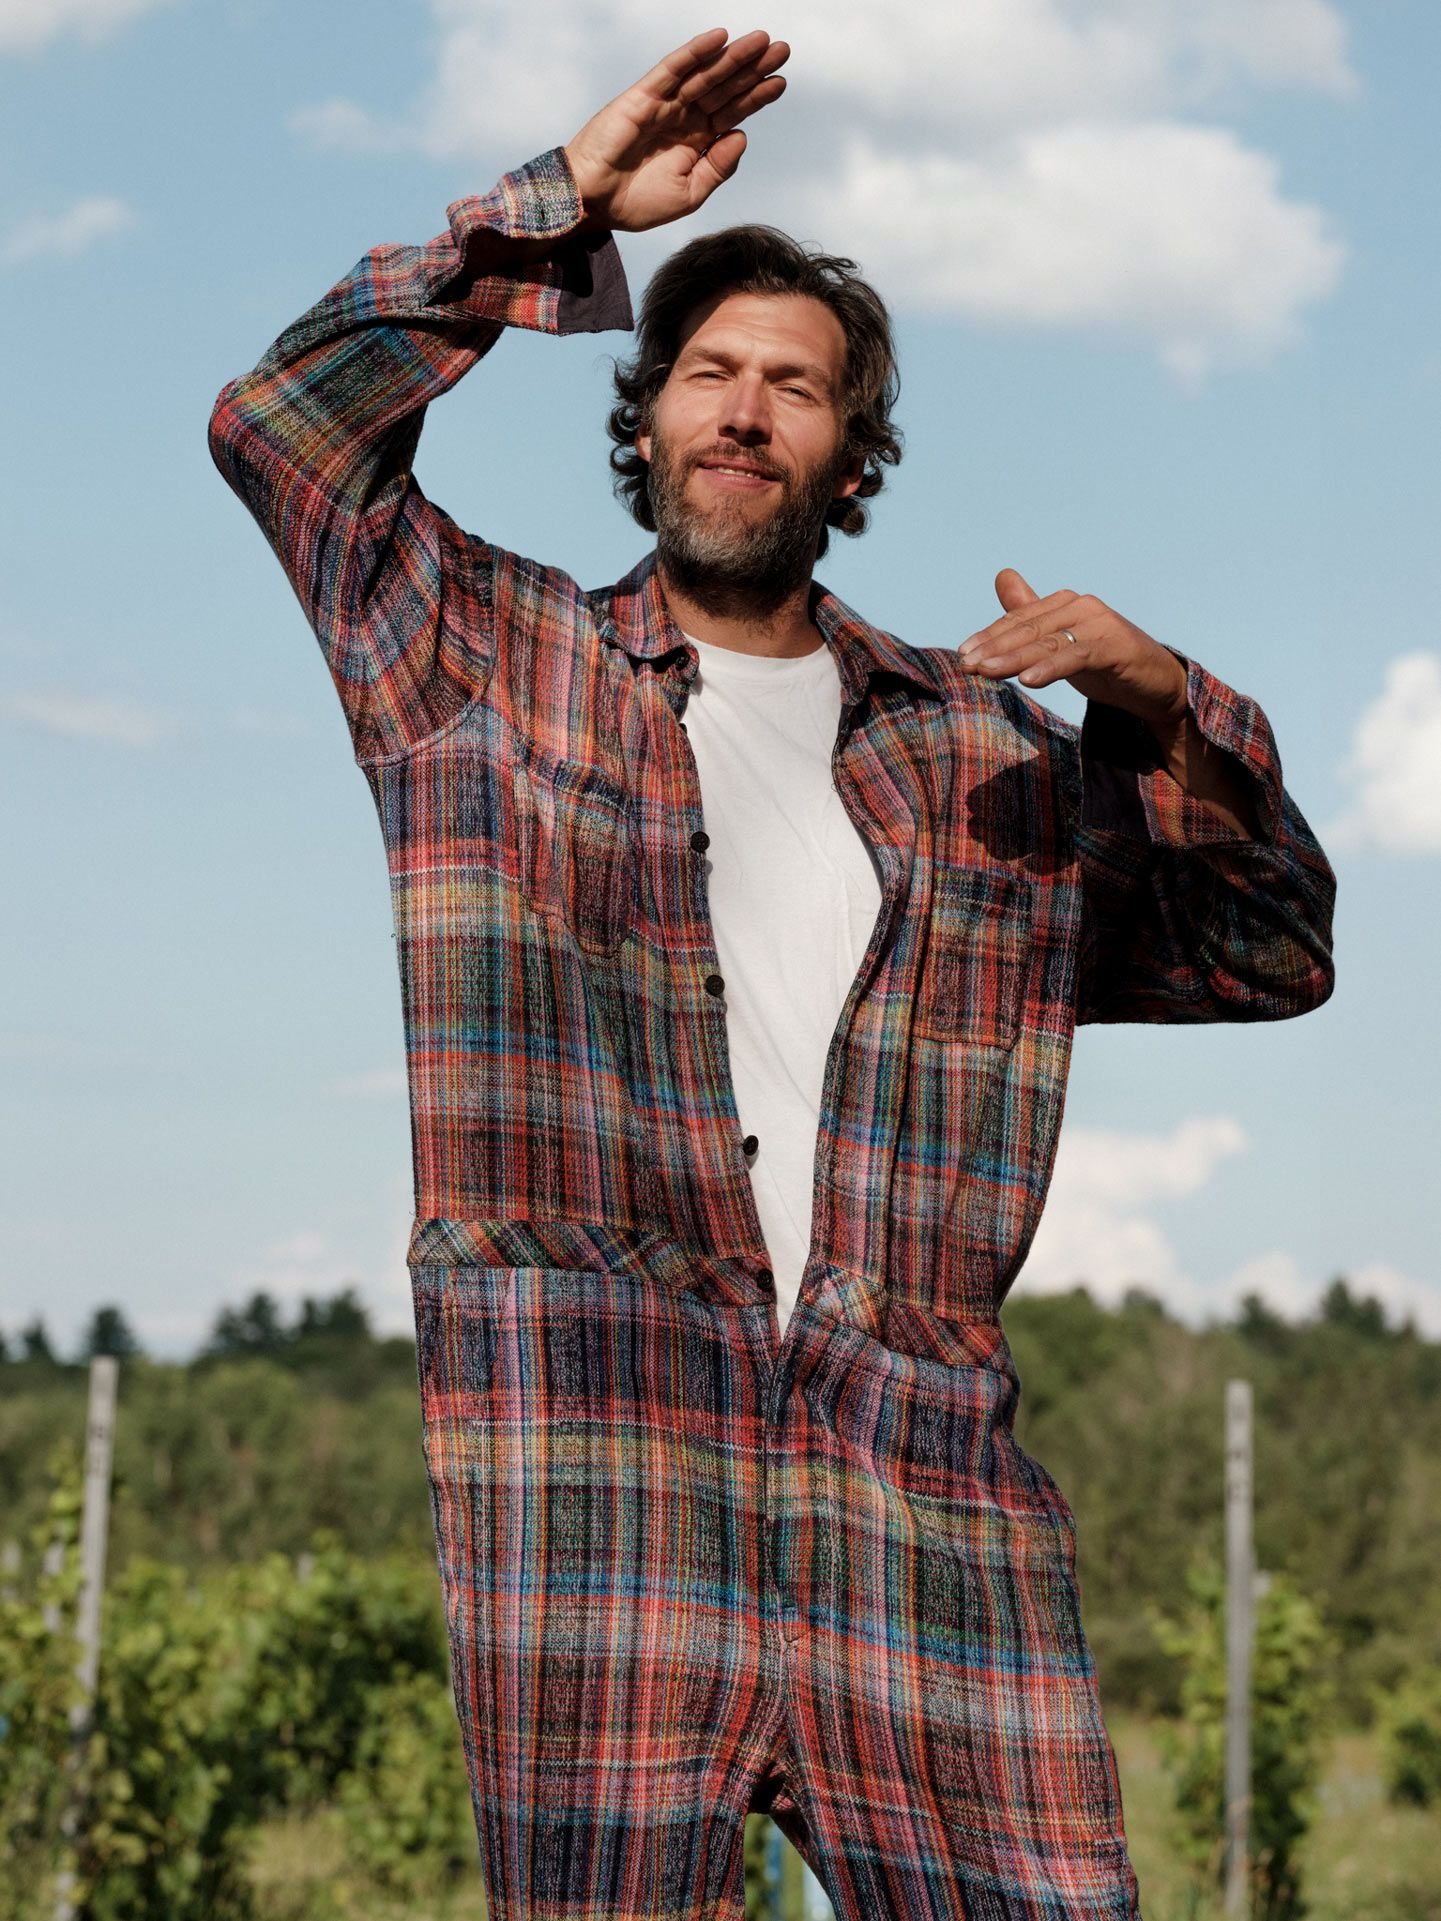 man in field wearing colorful plaid overalls face in the sun raising his hand to shade his eyes by Alexi Hobbs at Pinard & Filles winery for Larose Paris